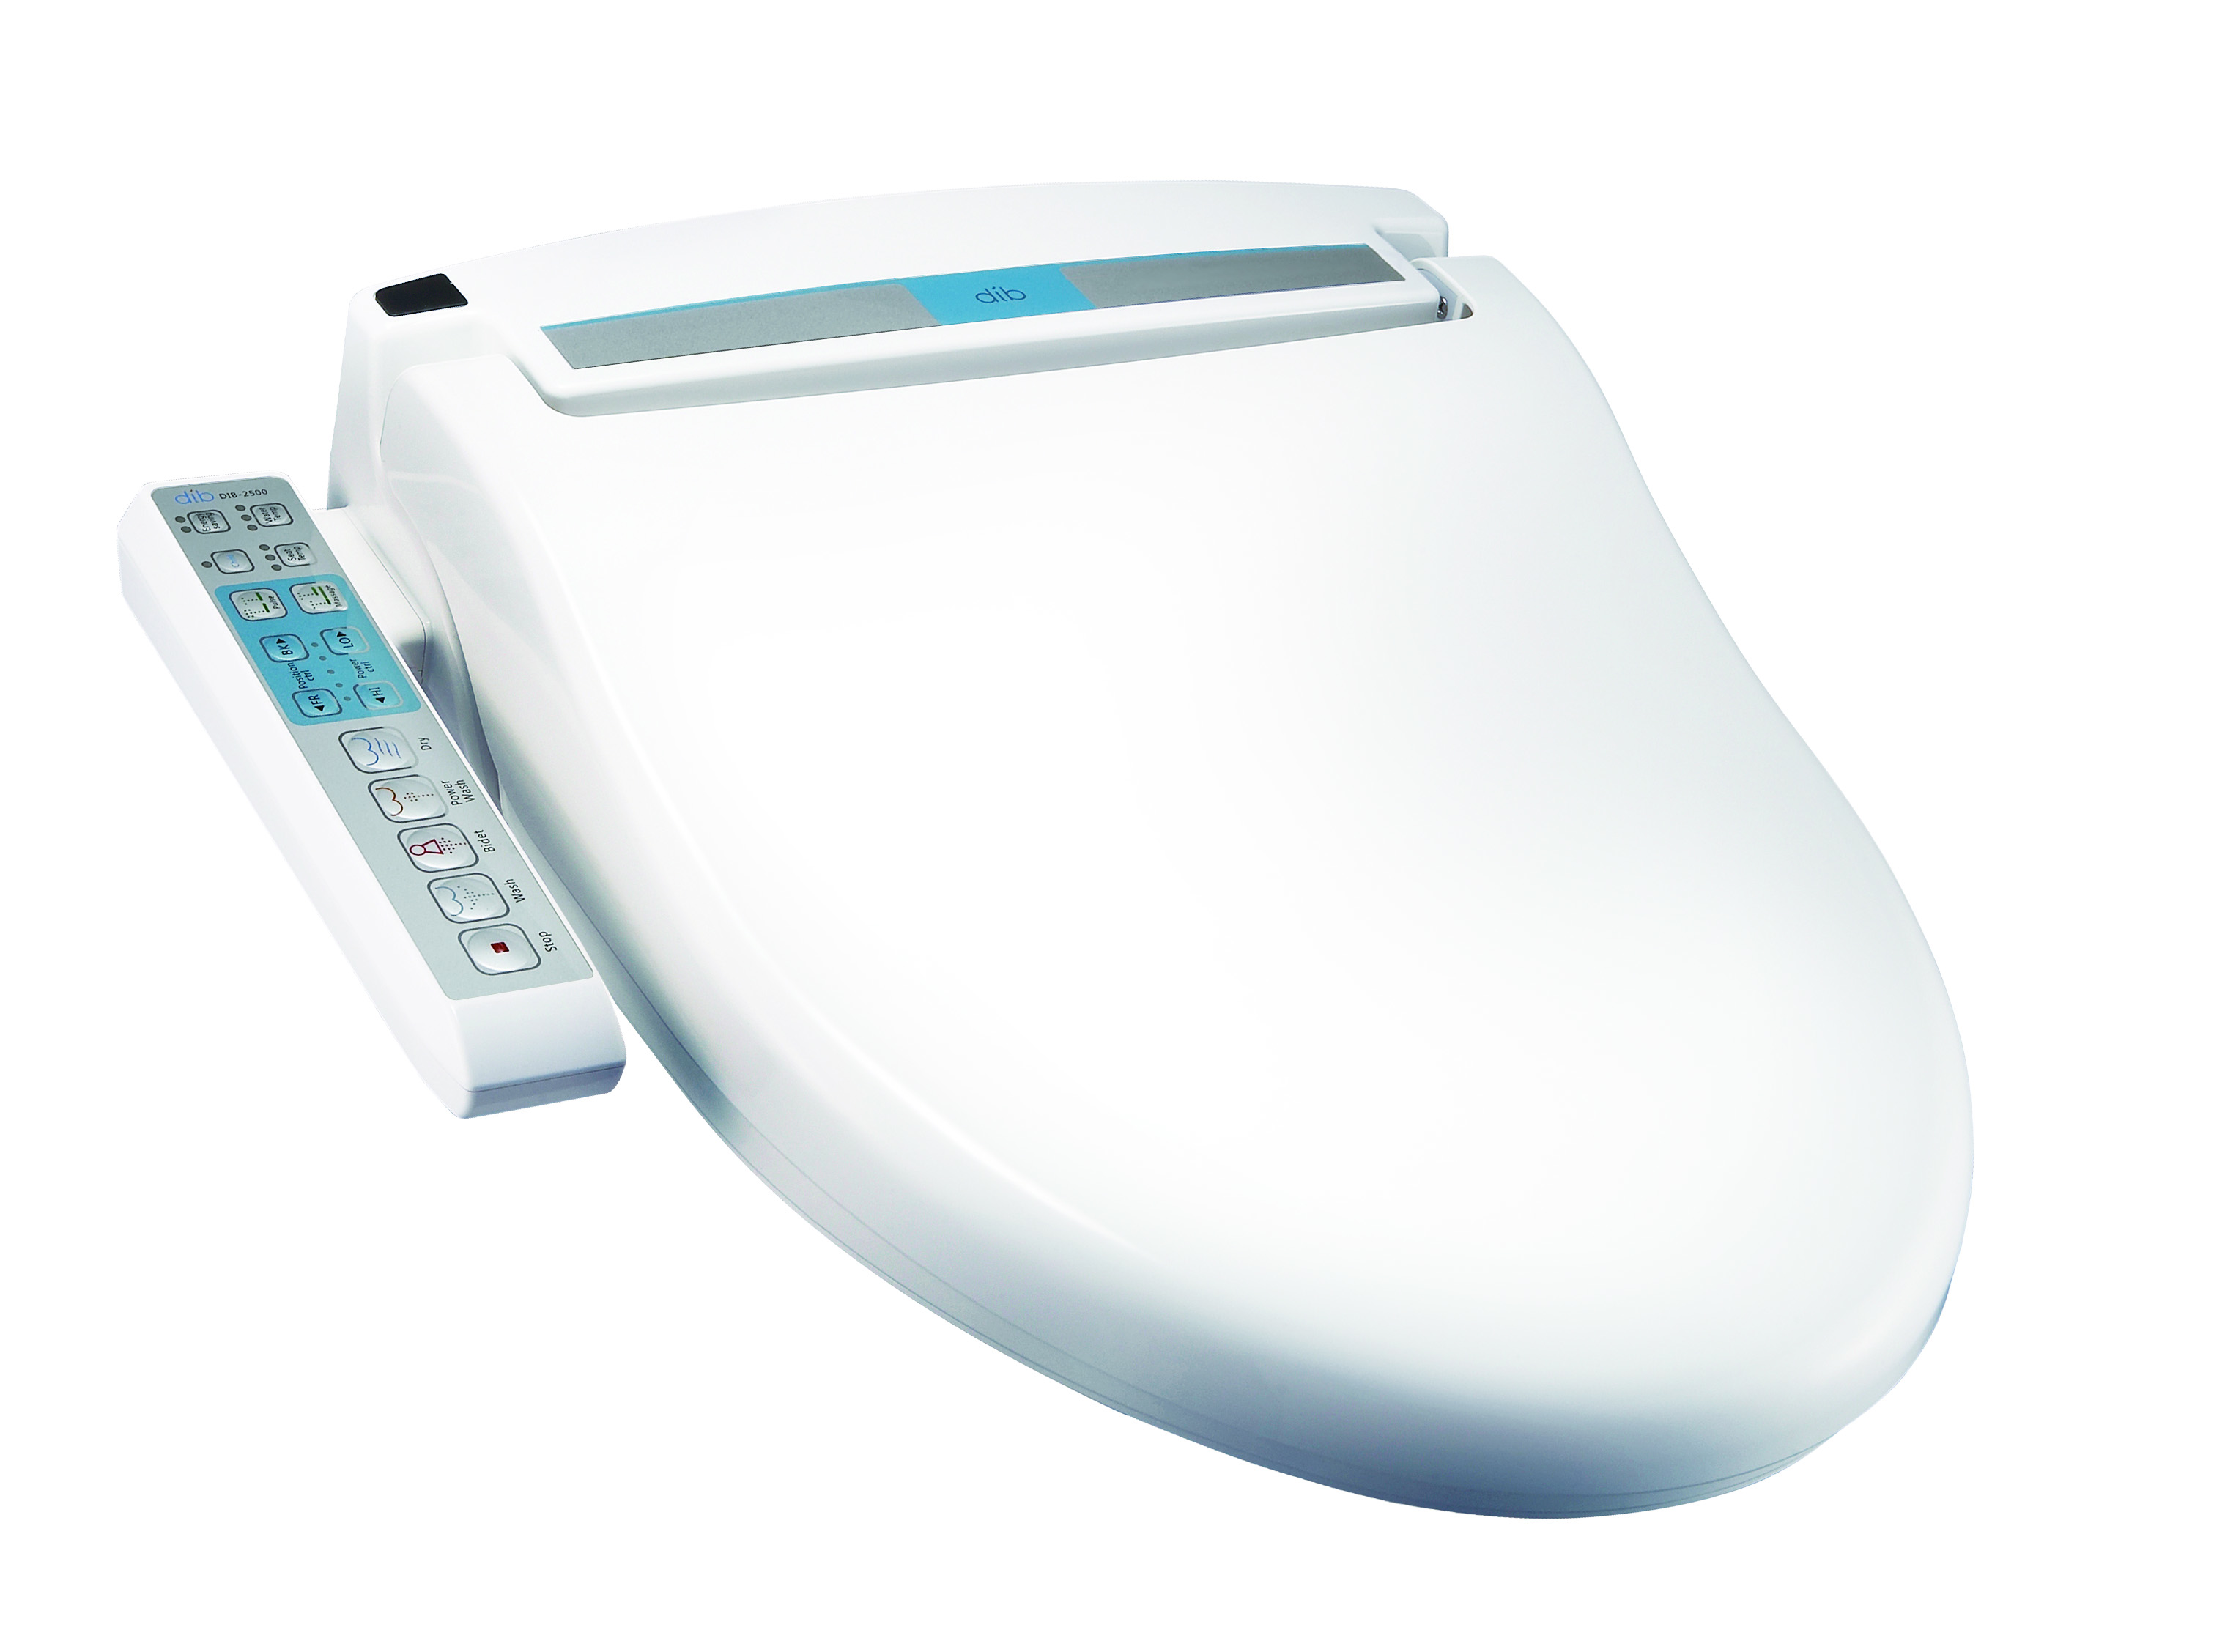 dib2500 Auto Bidet Spa - Luxury electronic toilet seat